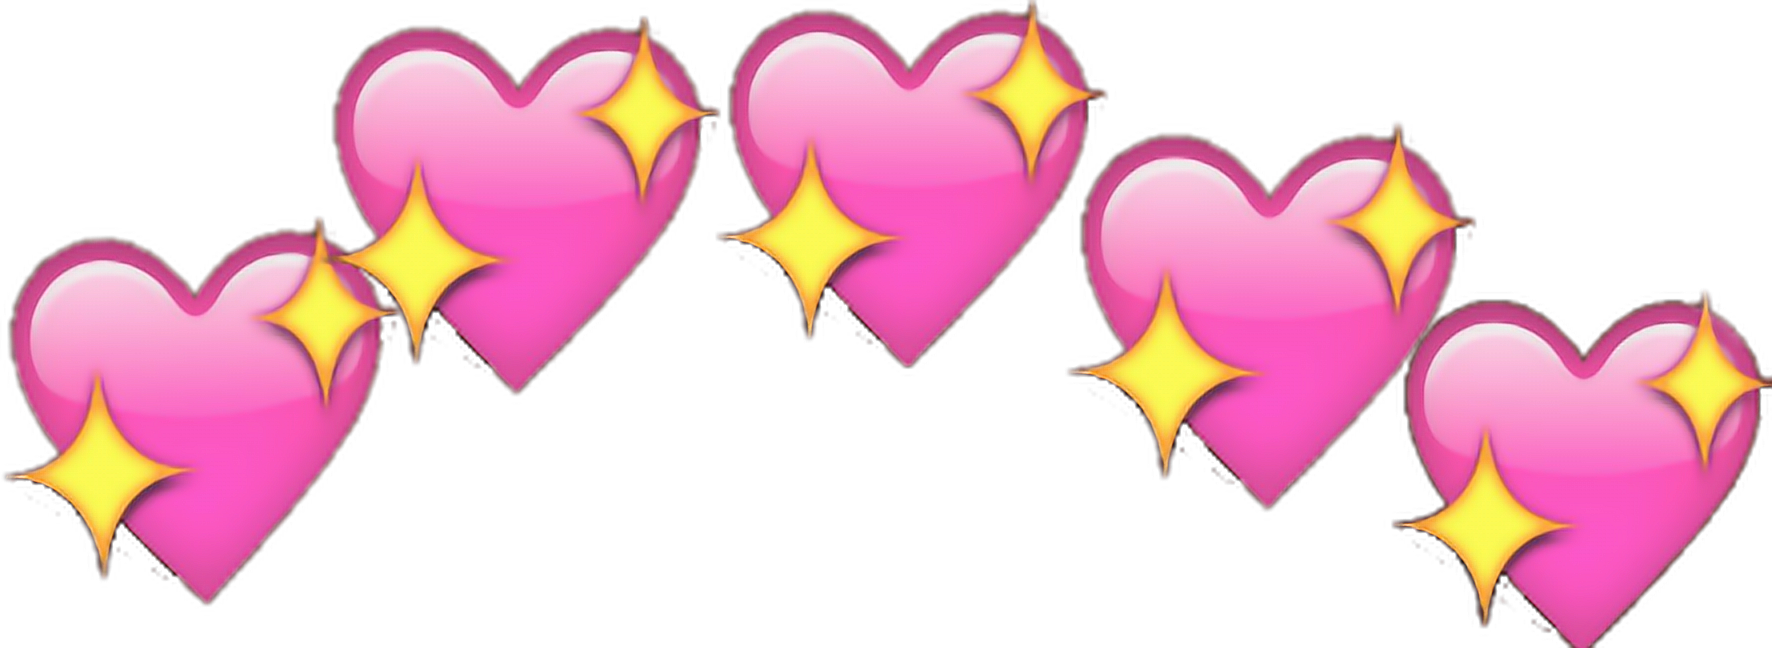 Hearts png images. Heart lights star emoji